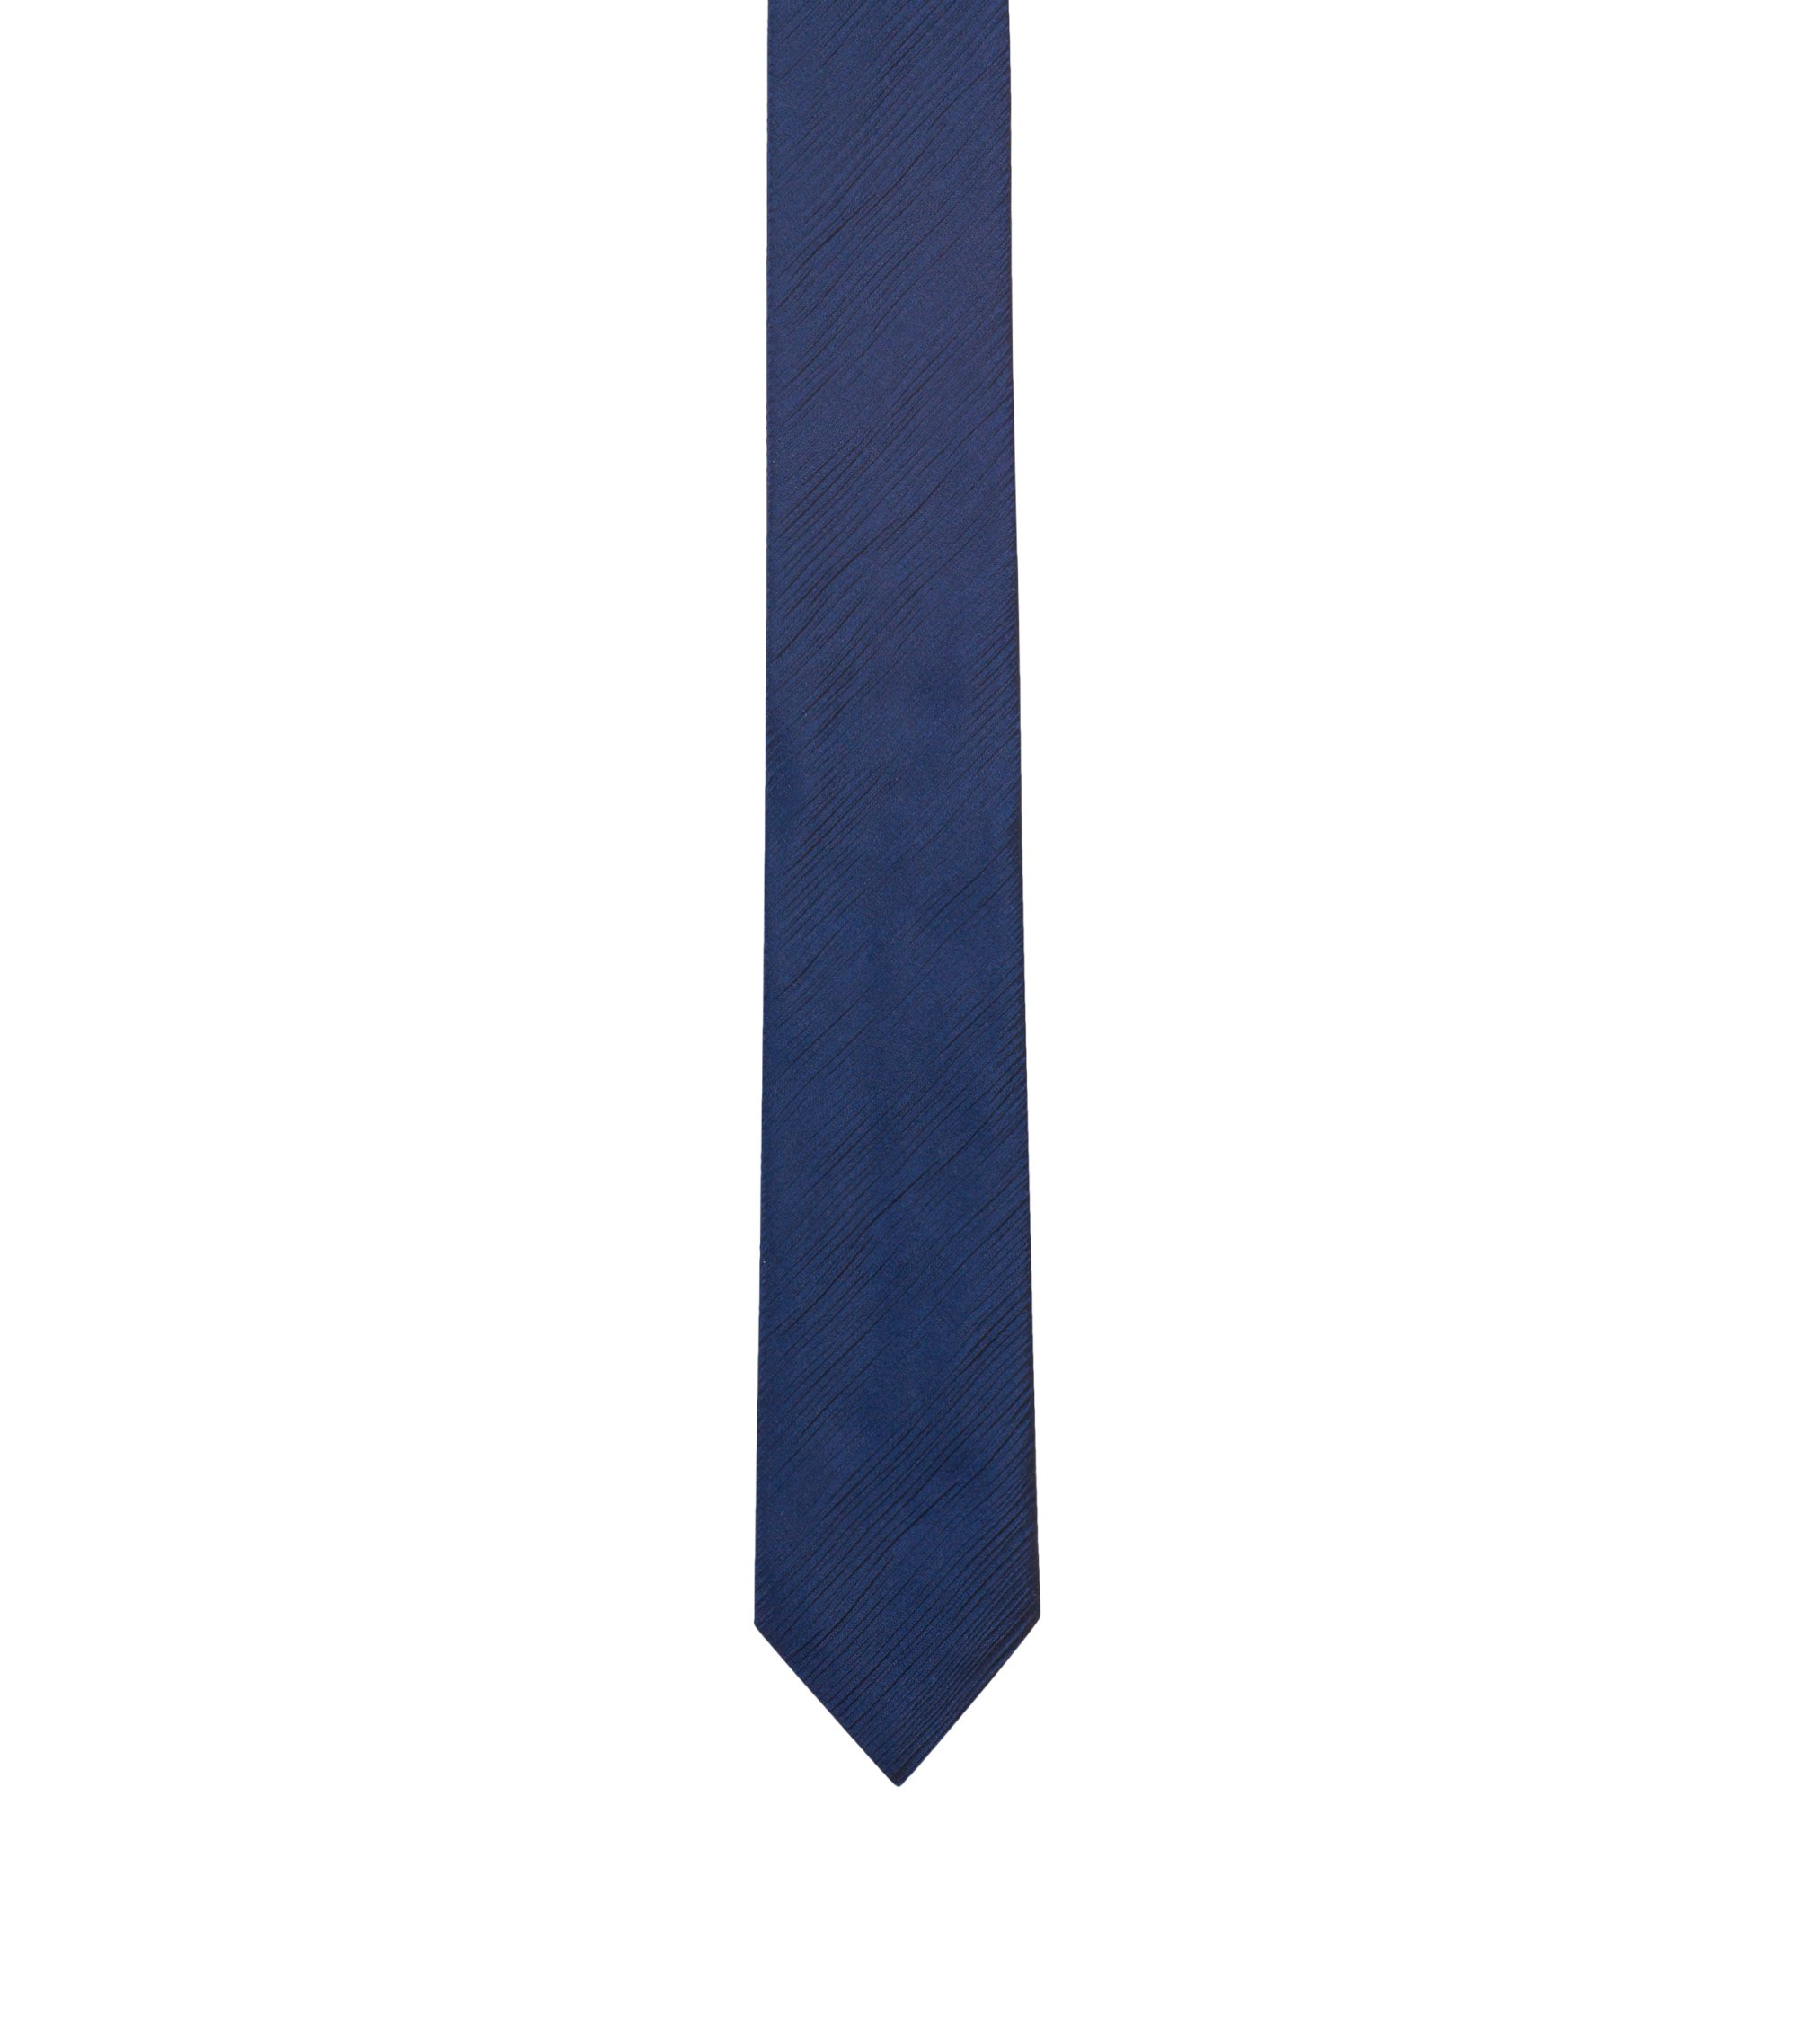 Silk-blend tie with rippled texture, Dark Blue